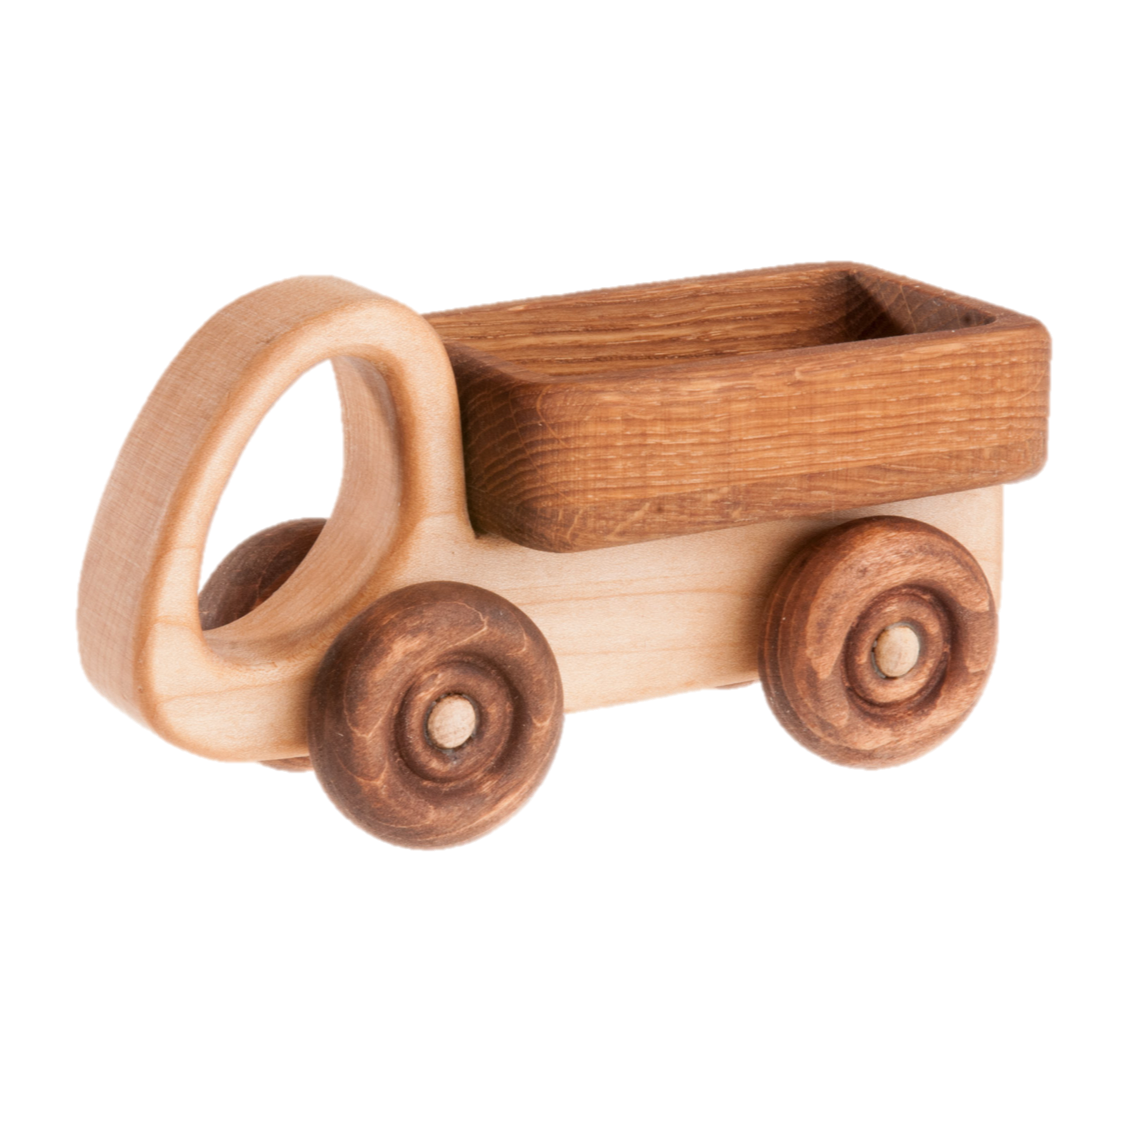 Wooden Truck Car With Moving Wheels In 2020 Wooden Truck Handmade Wooden Toys Wooden Toy Trucks